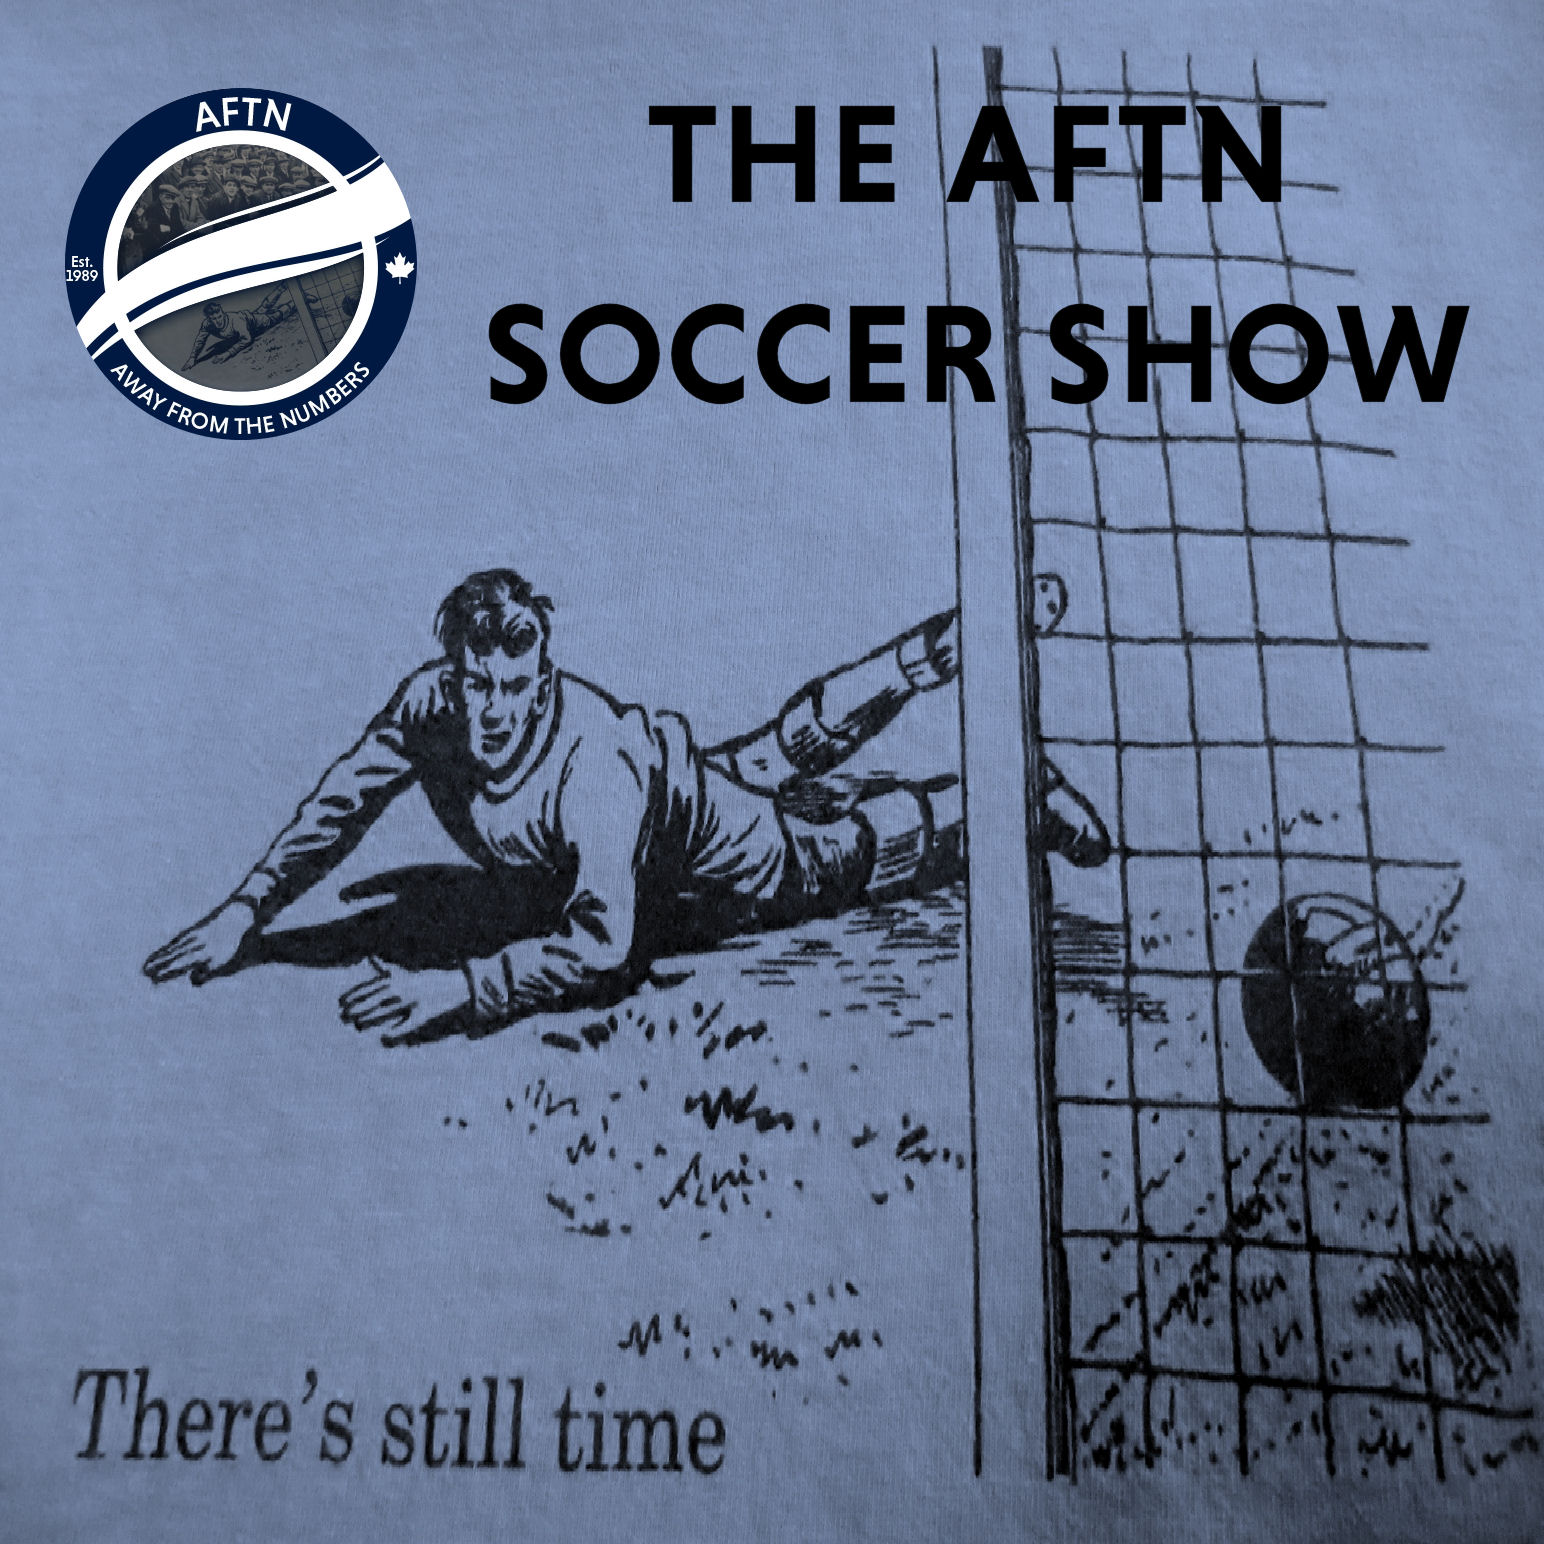 Episode 307 - The AFTN Soccer Show (Divided We Fall with guests Spencer Richey, Efrain Juarez, and Felipe)